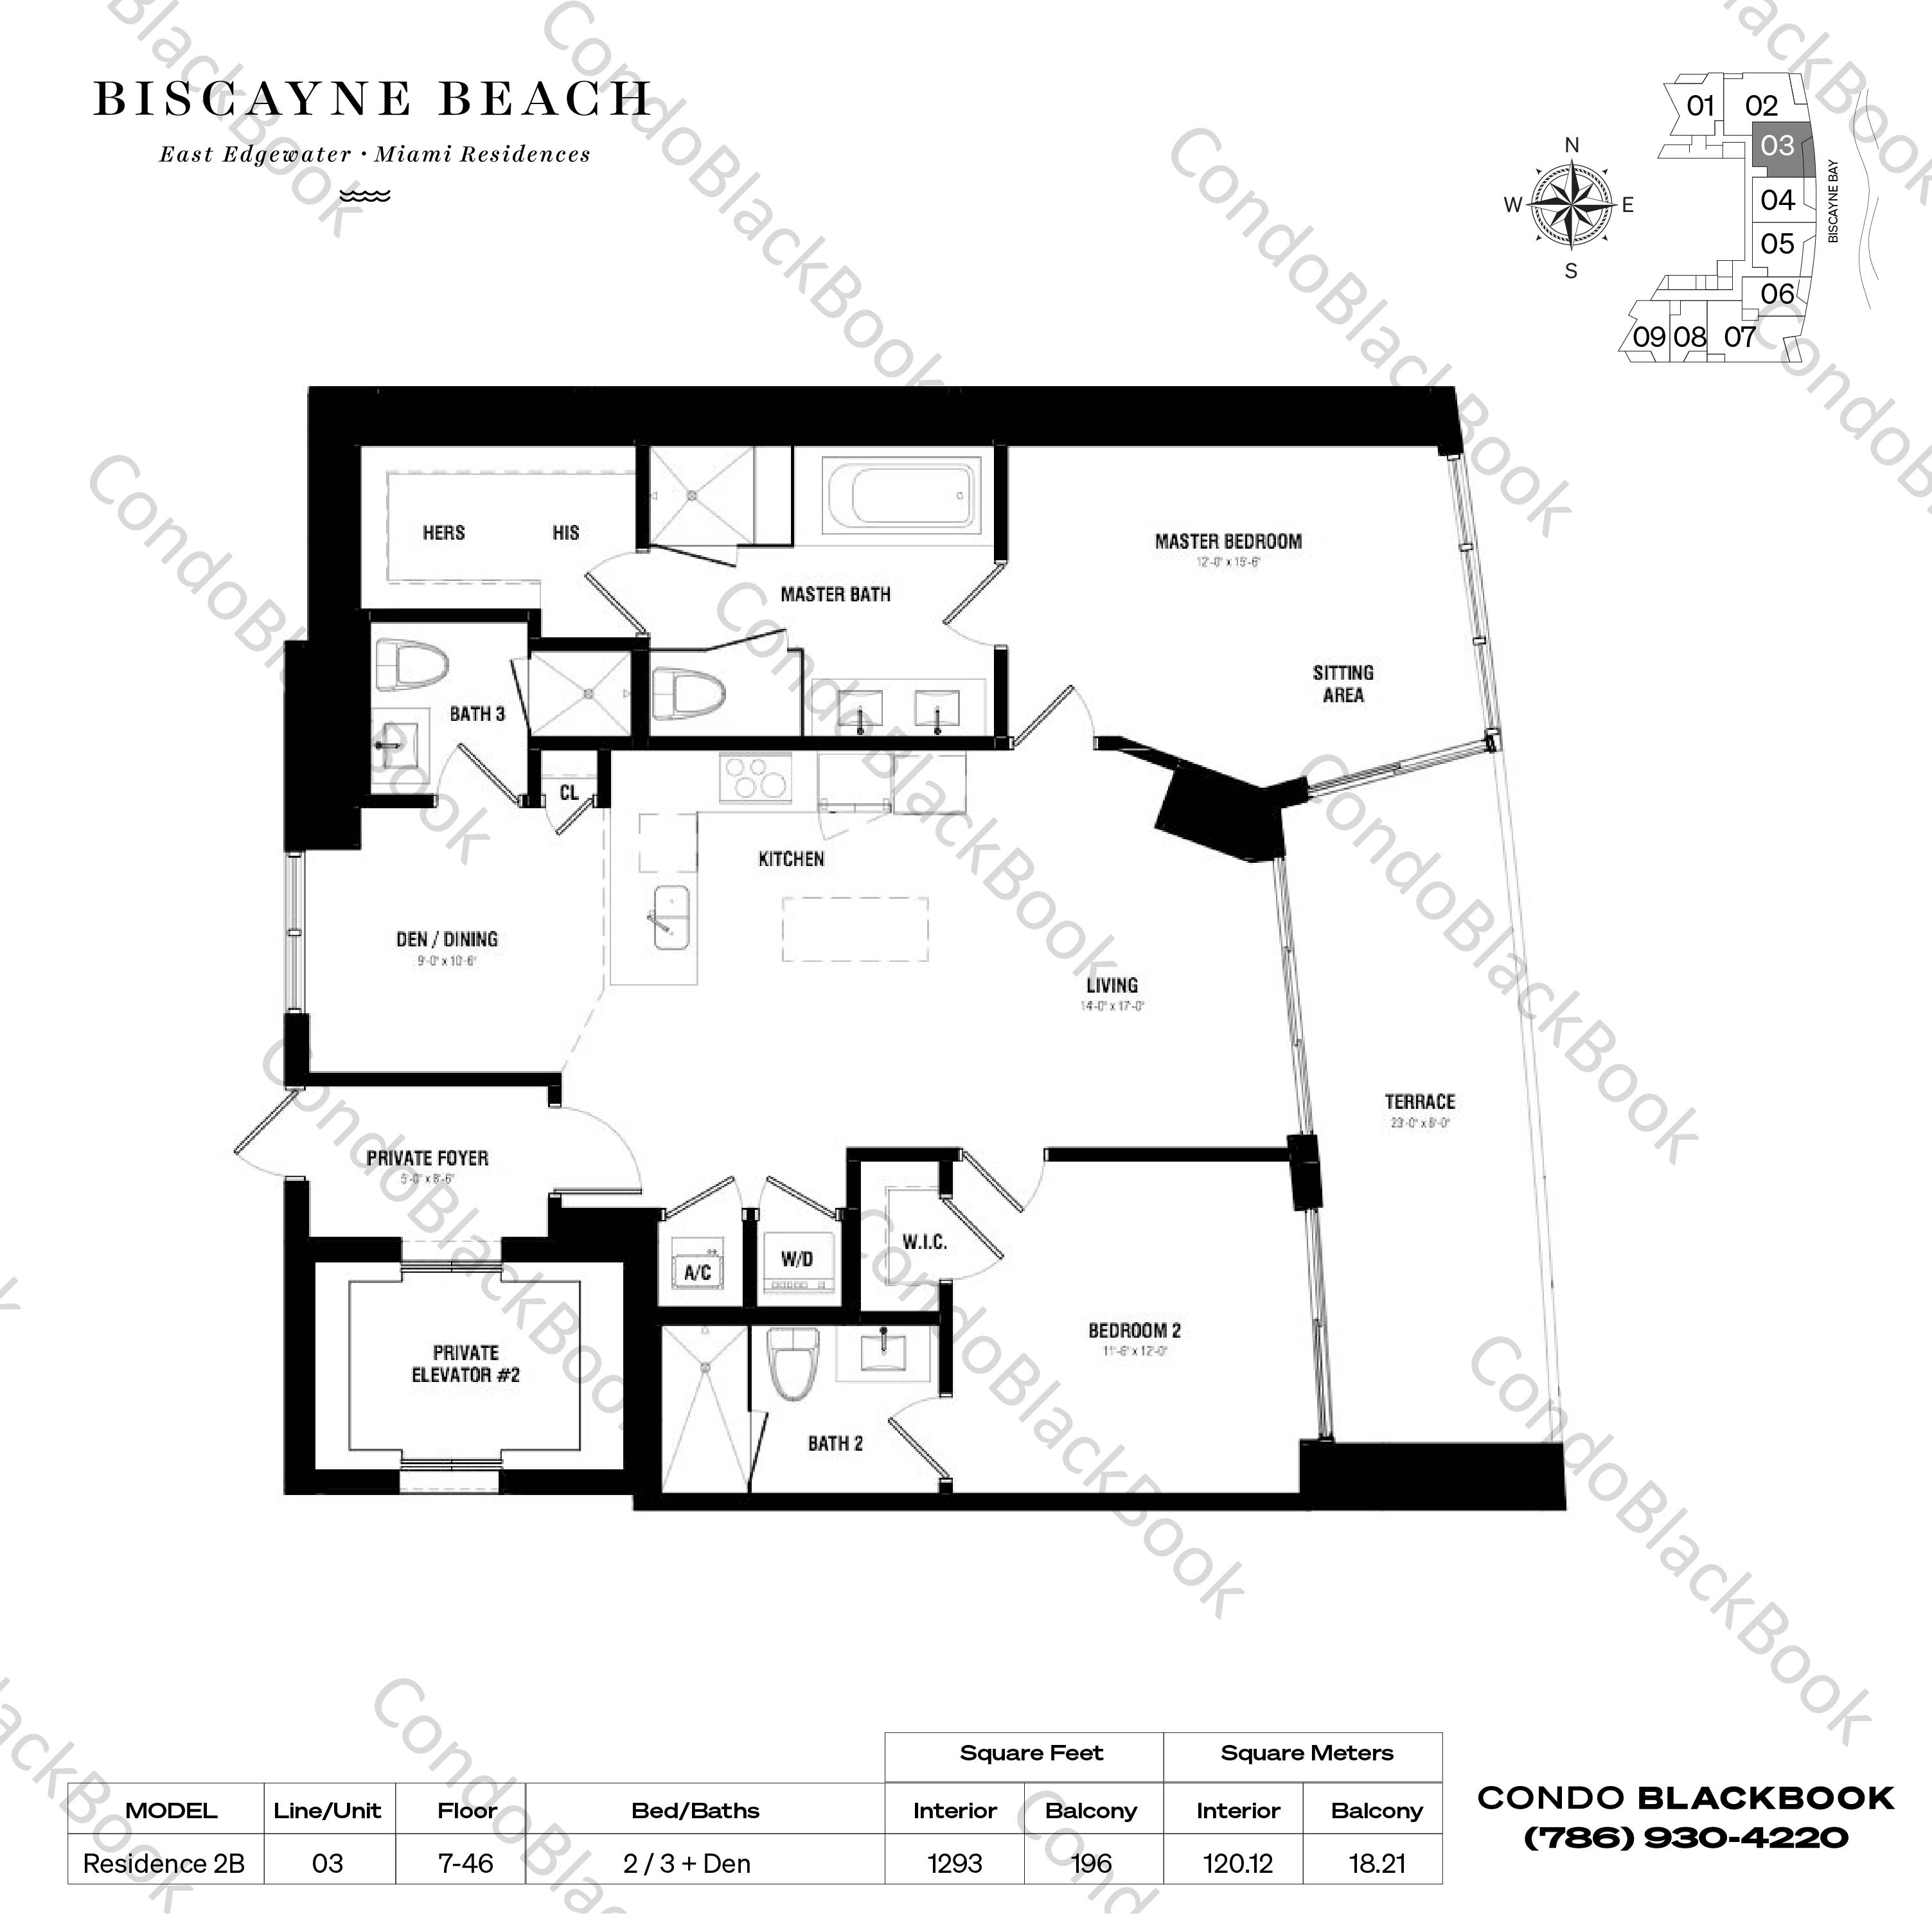 Biscayne Beach Condos For Sale And Rent In Edgewater Miami Condoblackbook